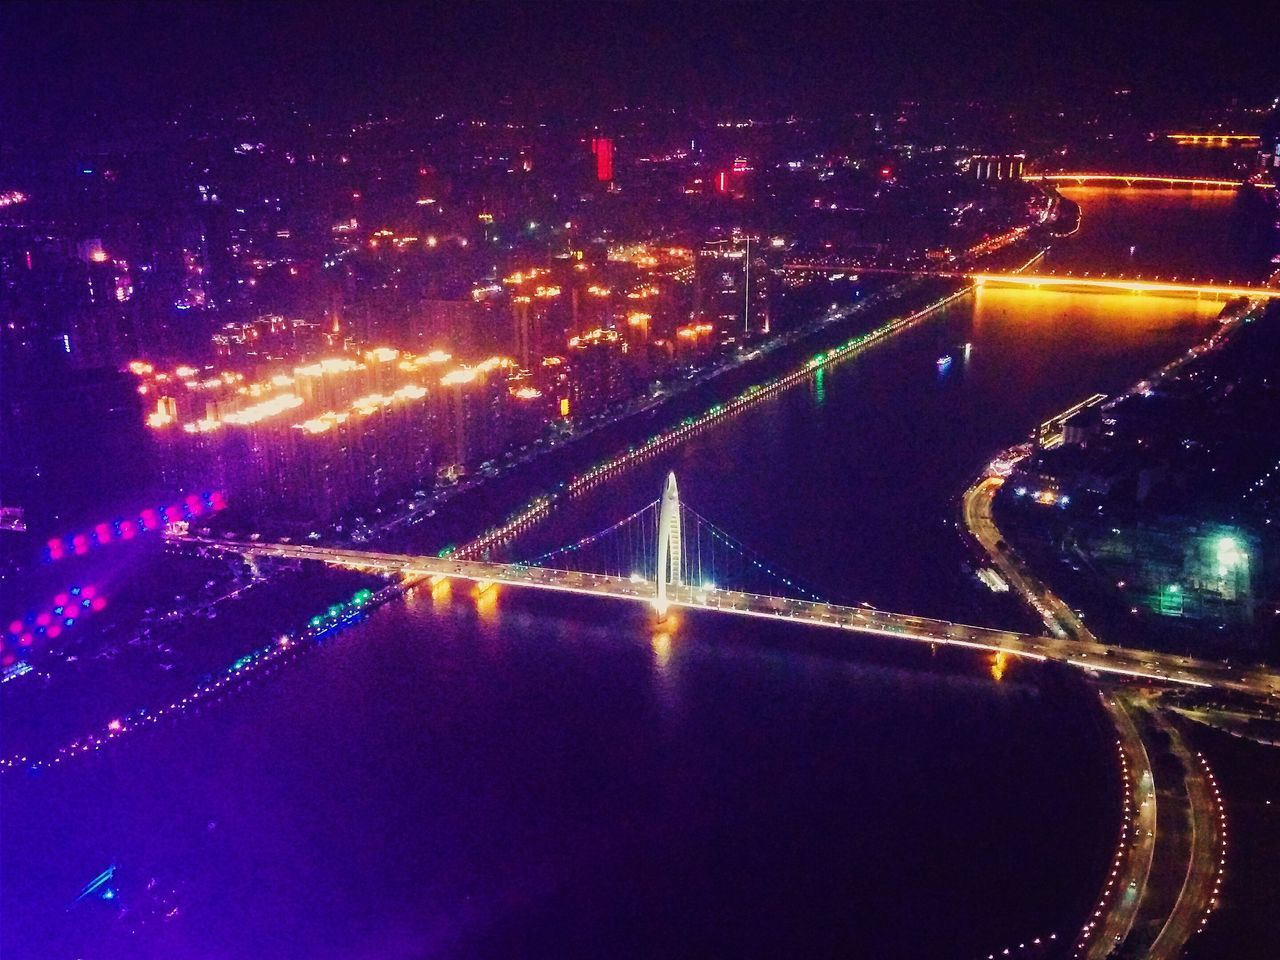 illuminated, night, transportation, connection, no people, light trail, bridge - man made structure, outdoors, city, road, architecture, water, cityscape, sky